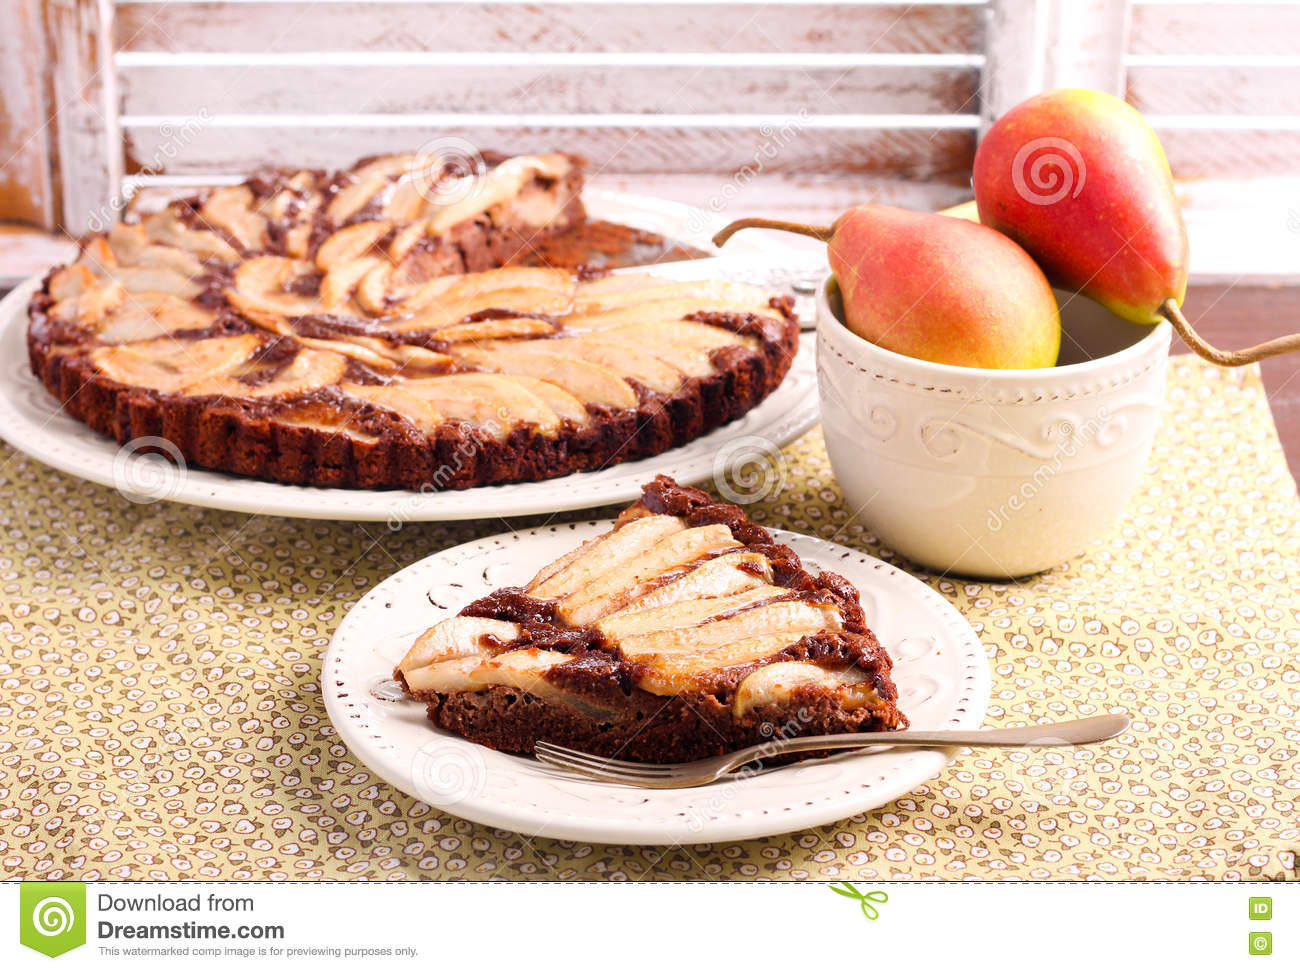 Download Chocolate And Almond Tart With Pear Stock Photo - Image of slice, chocolate: 74053018